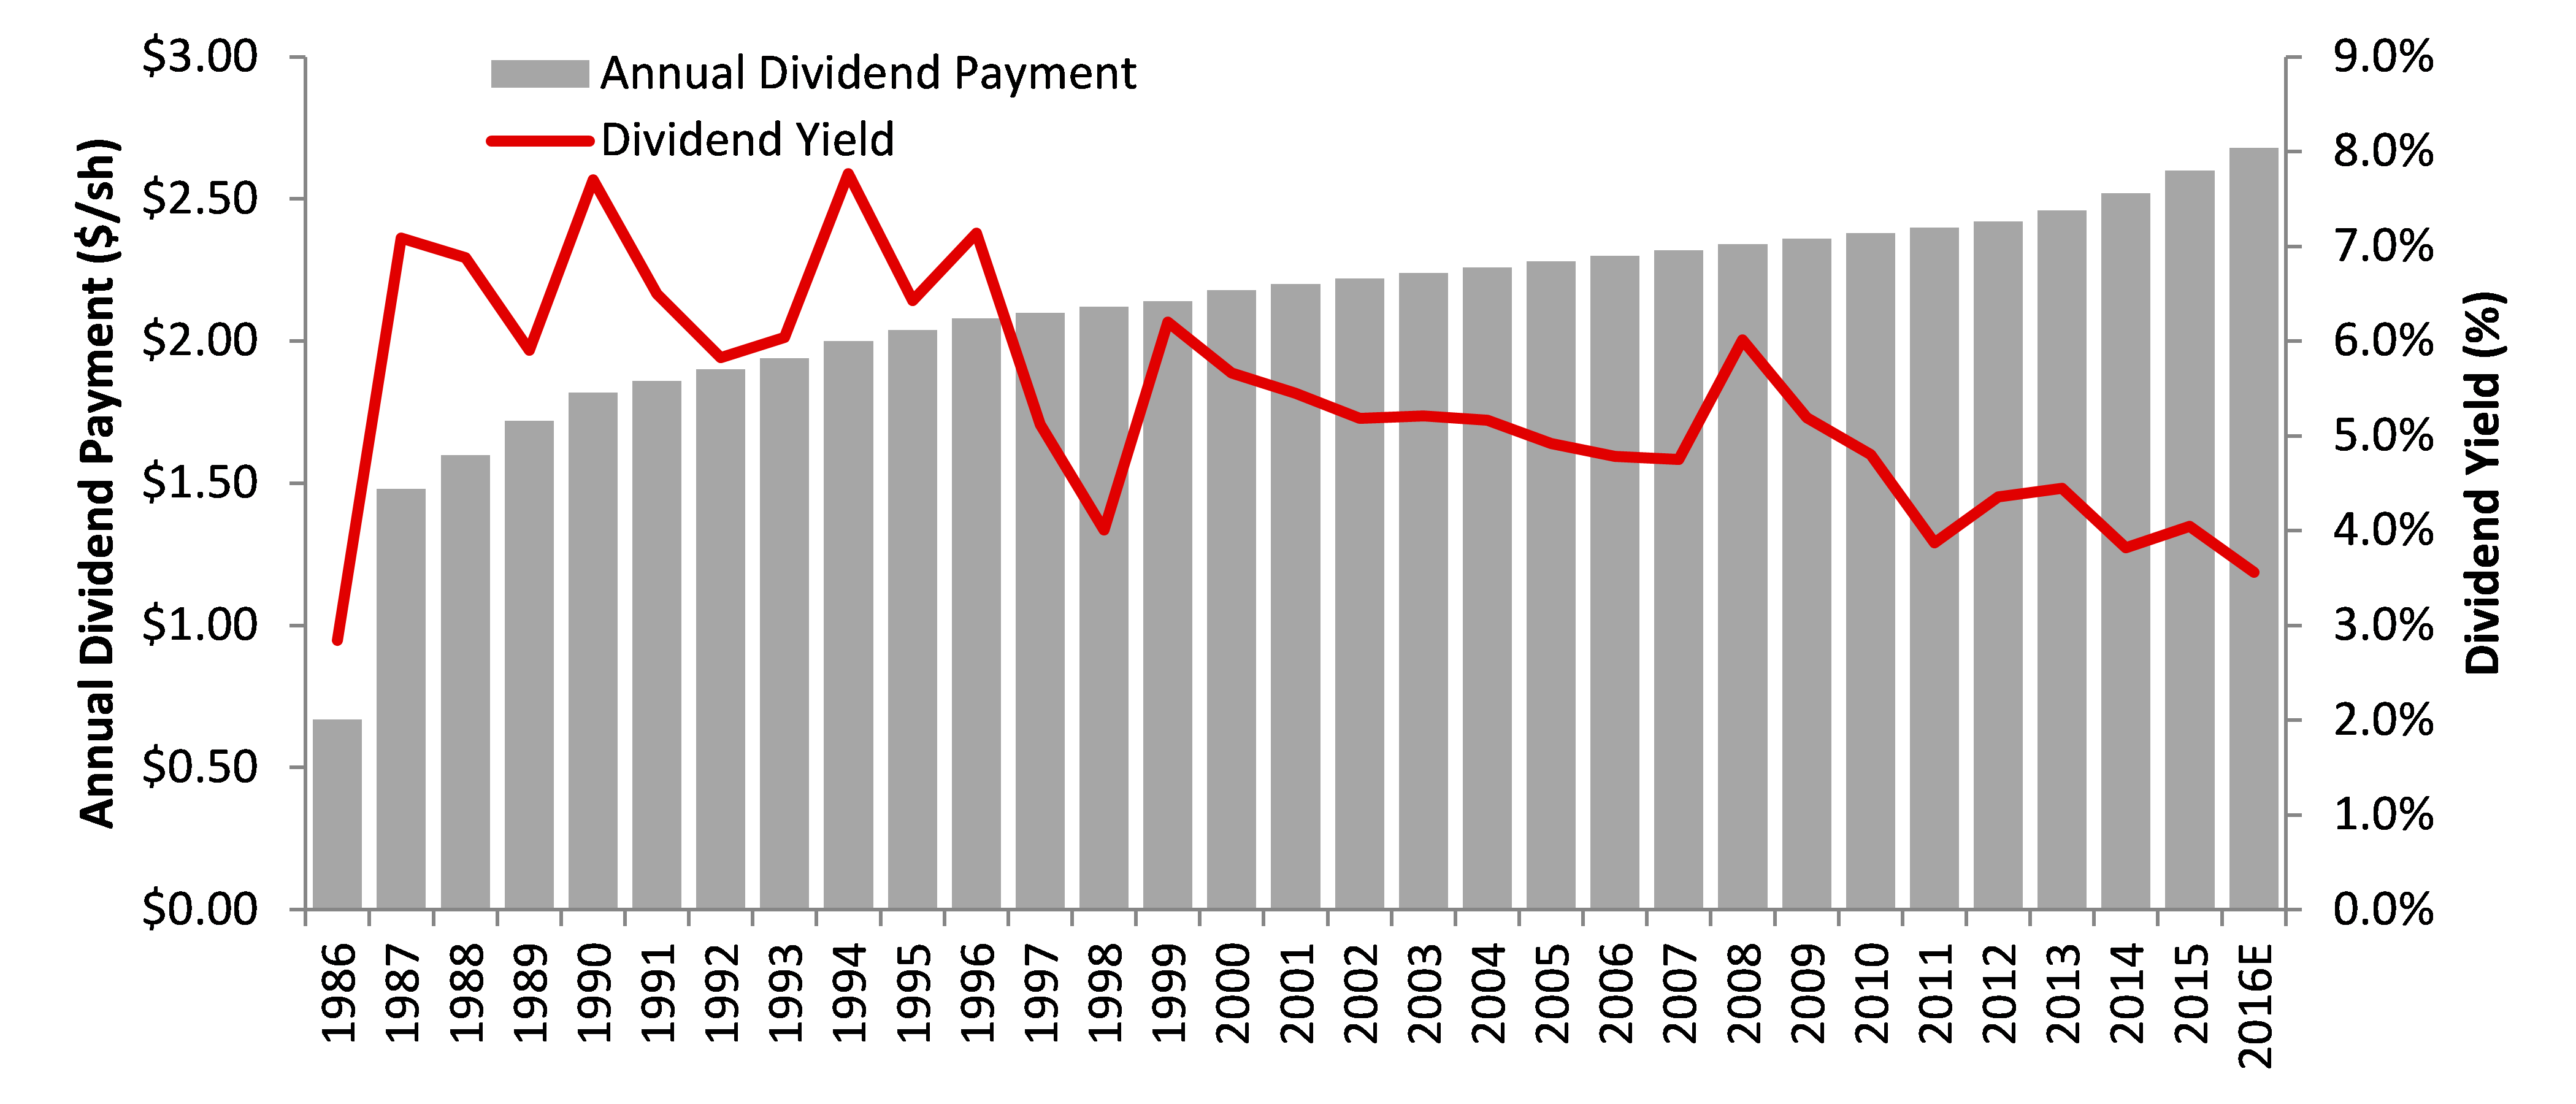 Consolidated Edison Dividend History